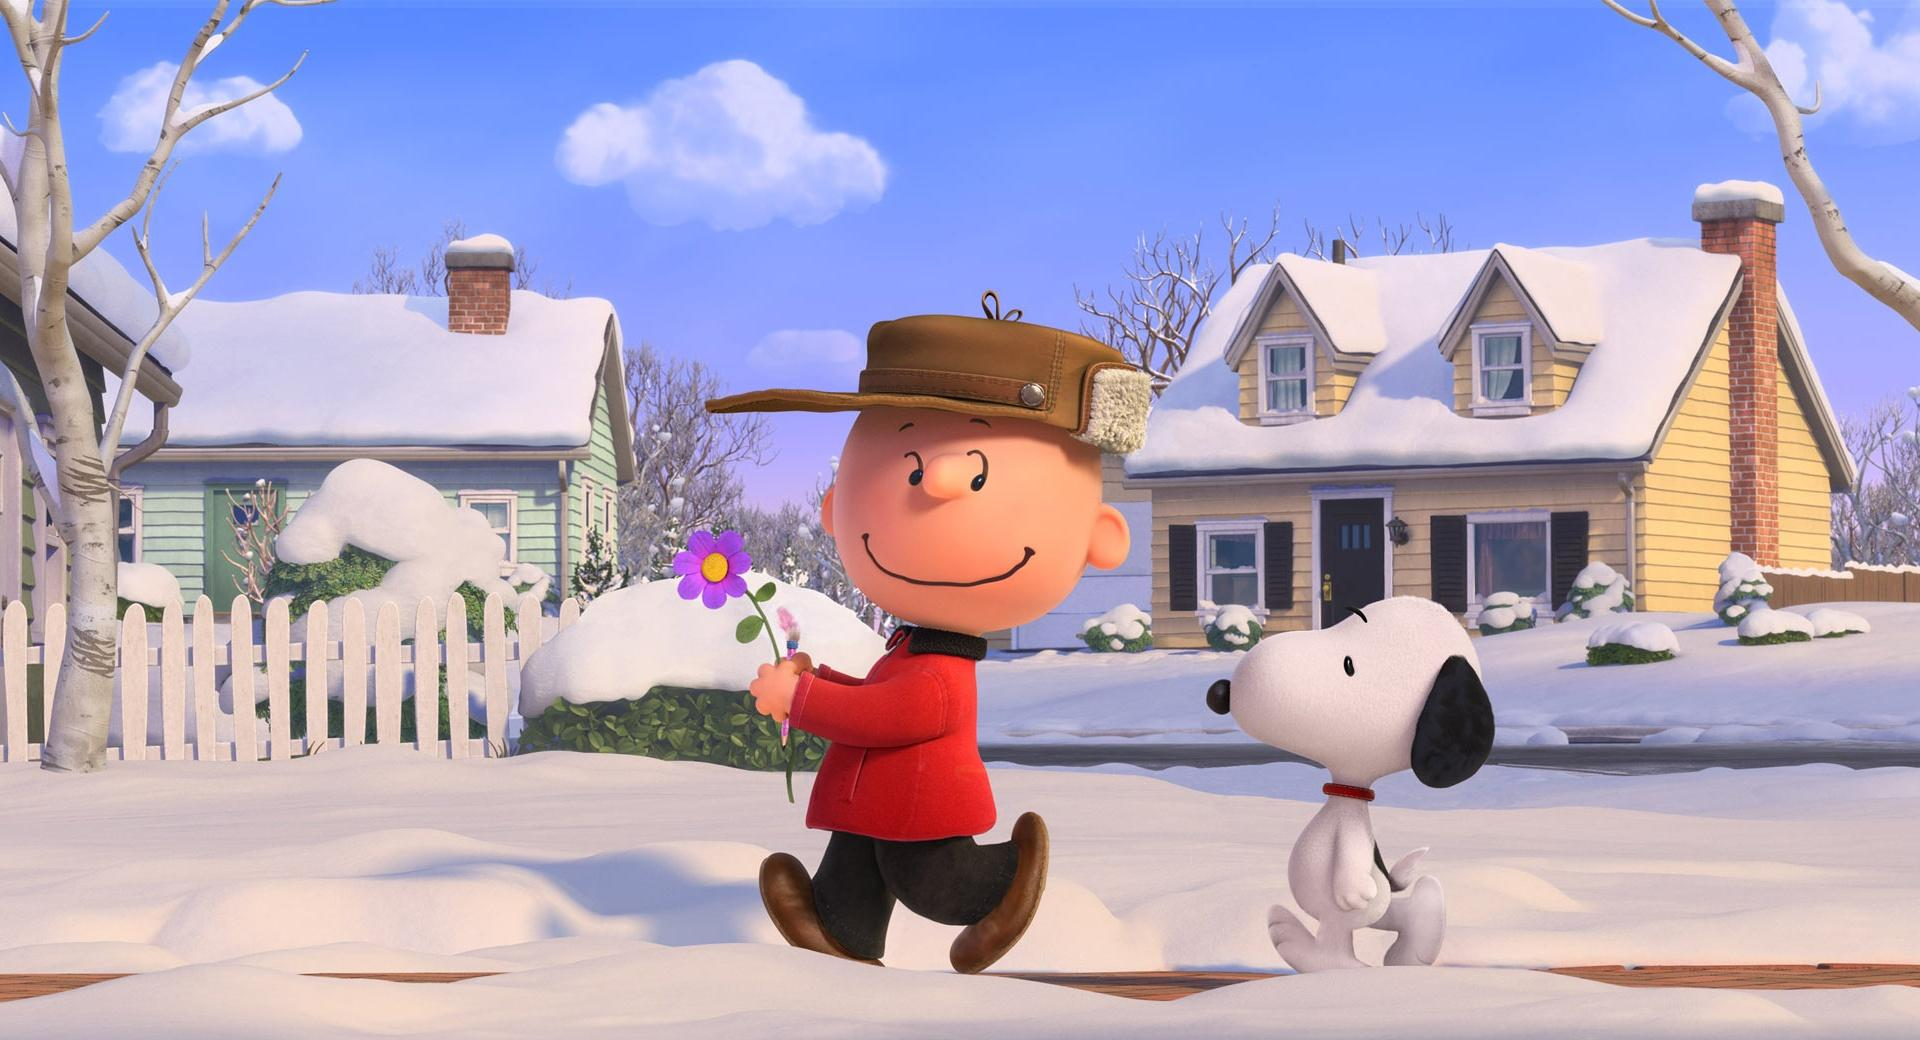 The Peanuts Movie 2015 wallpapers HD quality